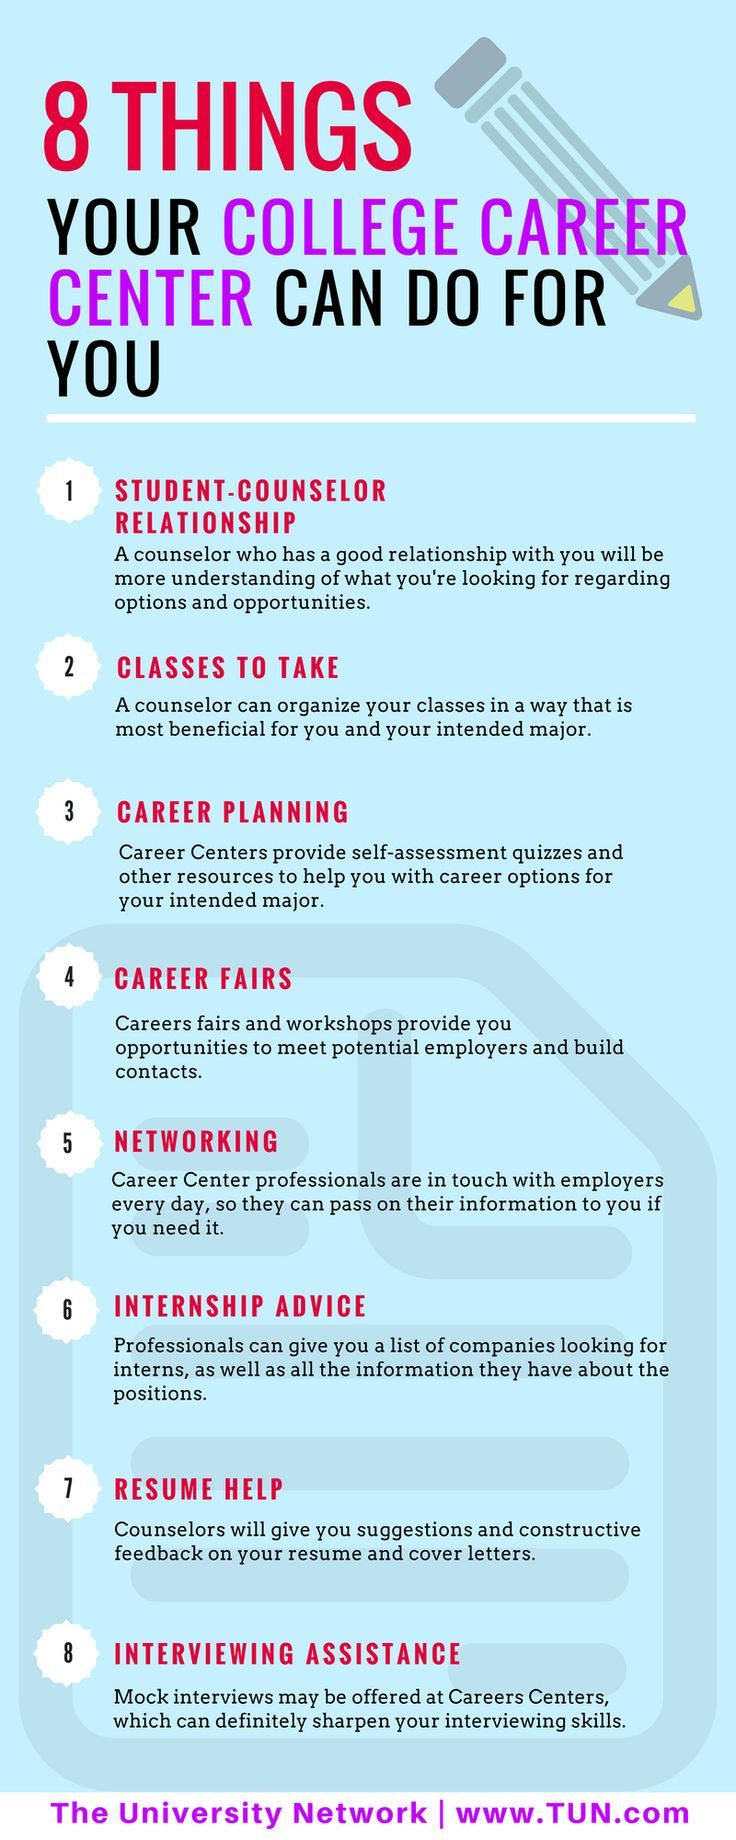 8 Things Your College Career Center Can Do For You | Career path ...